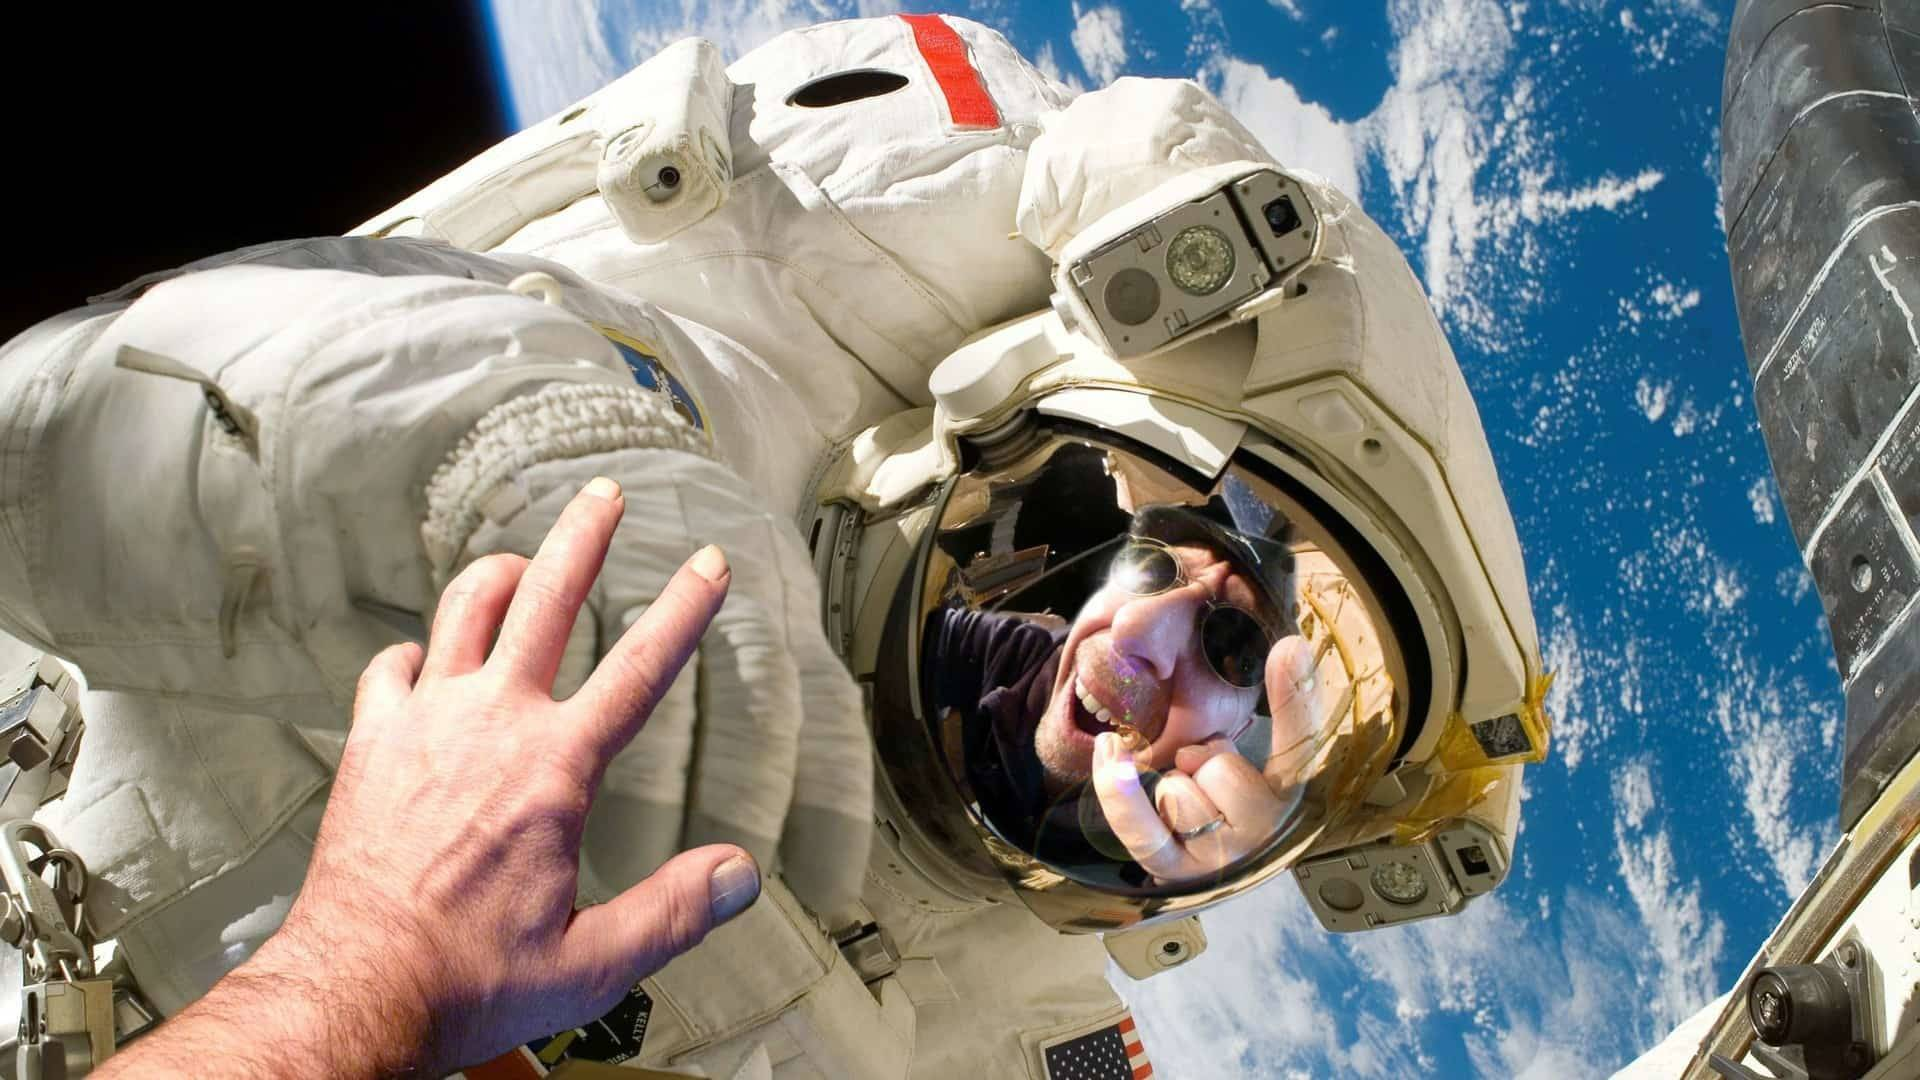 What Happens If You Died In Space?